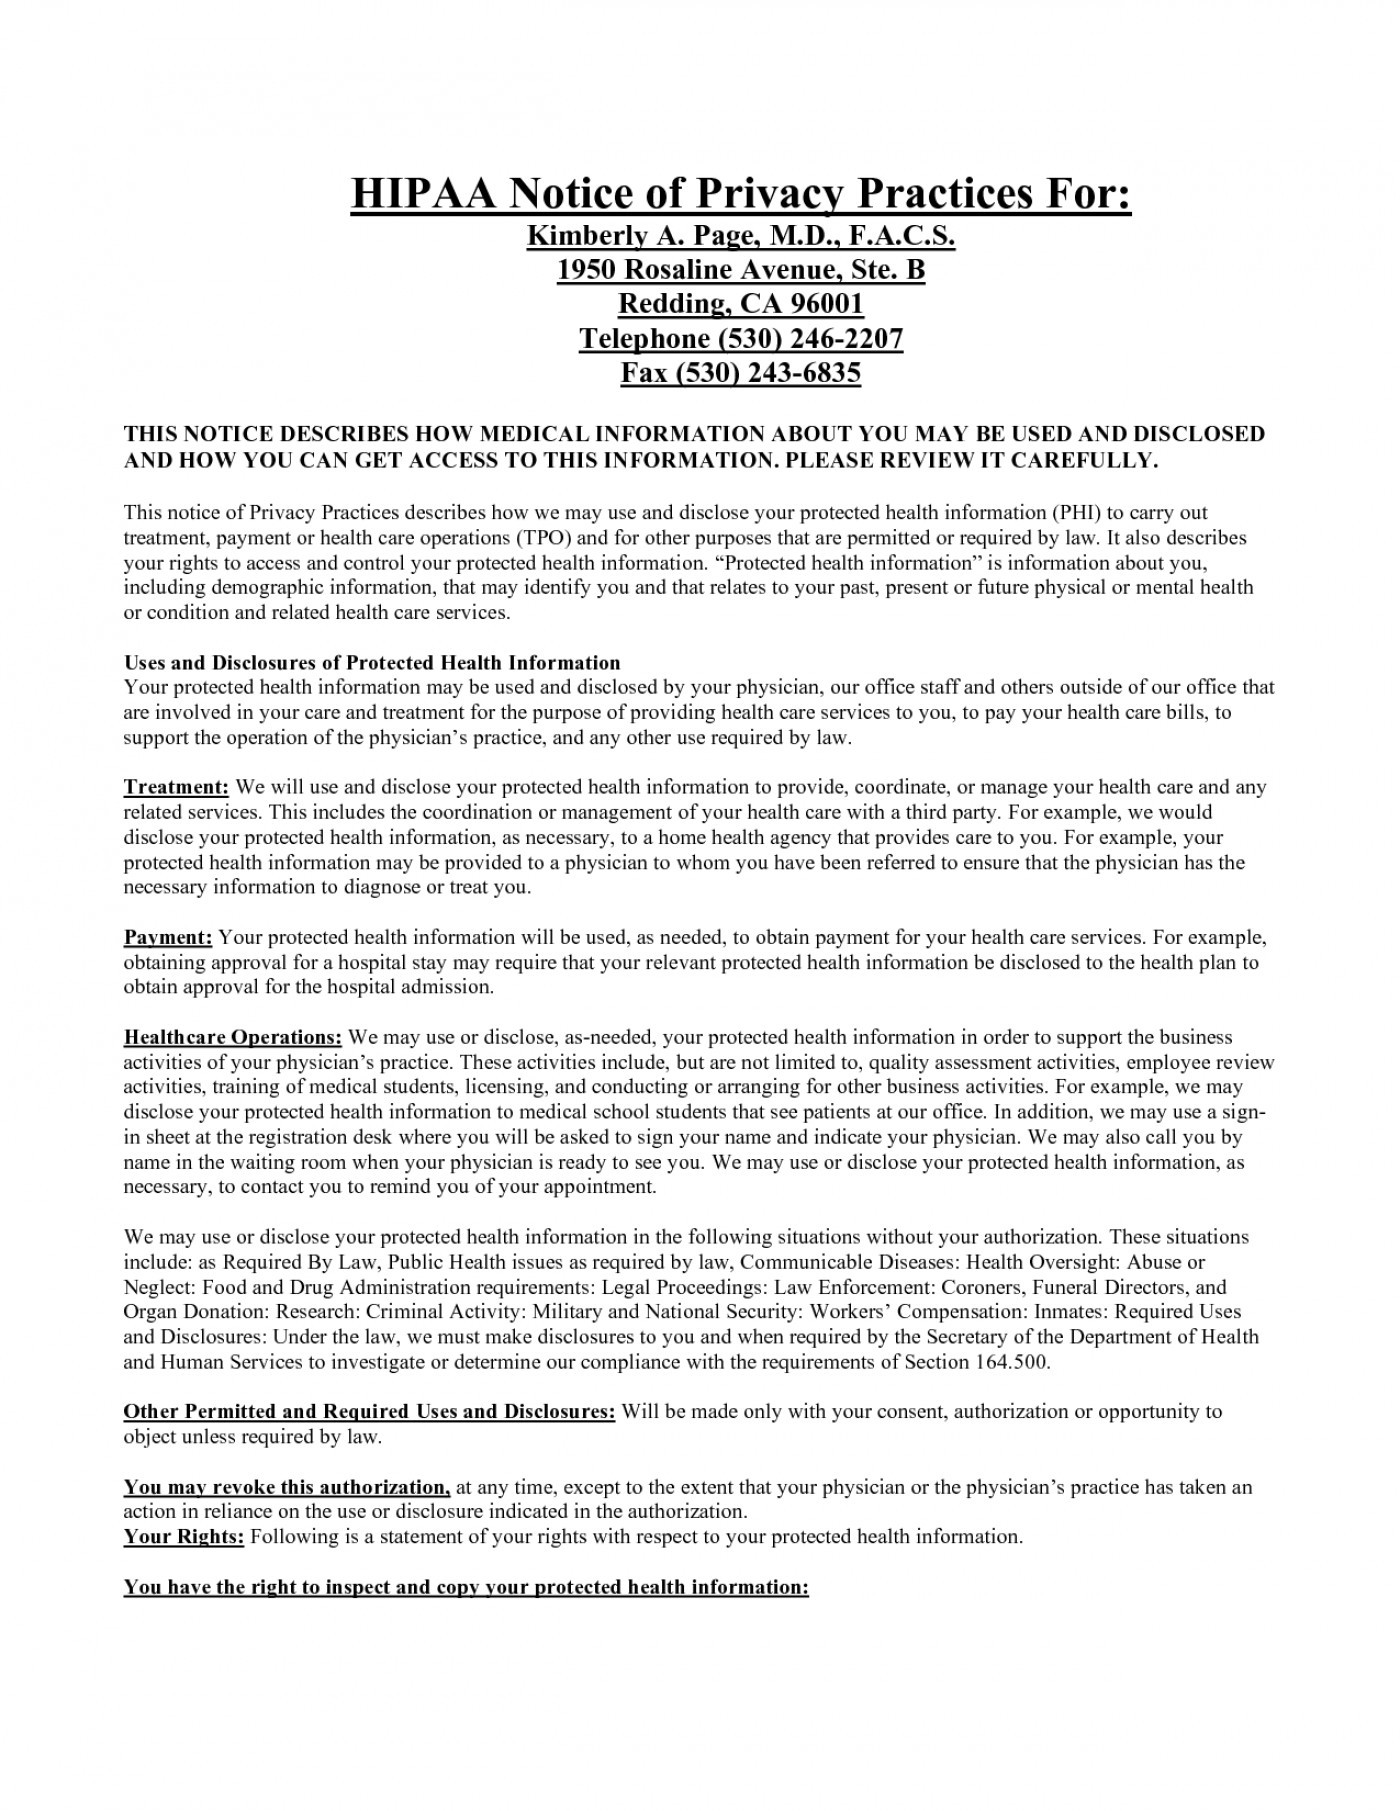 Hipaa Privacy Statement Template For Notice Privacy Practices Consent Form Impressive Templates